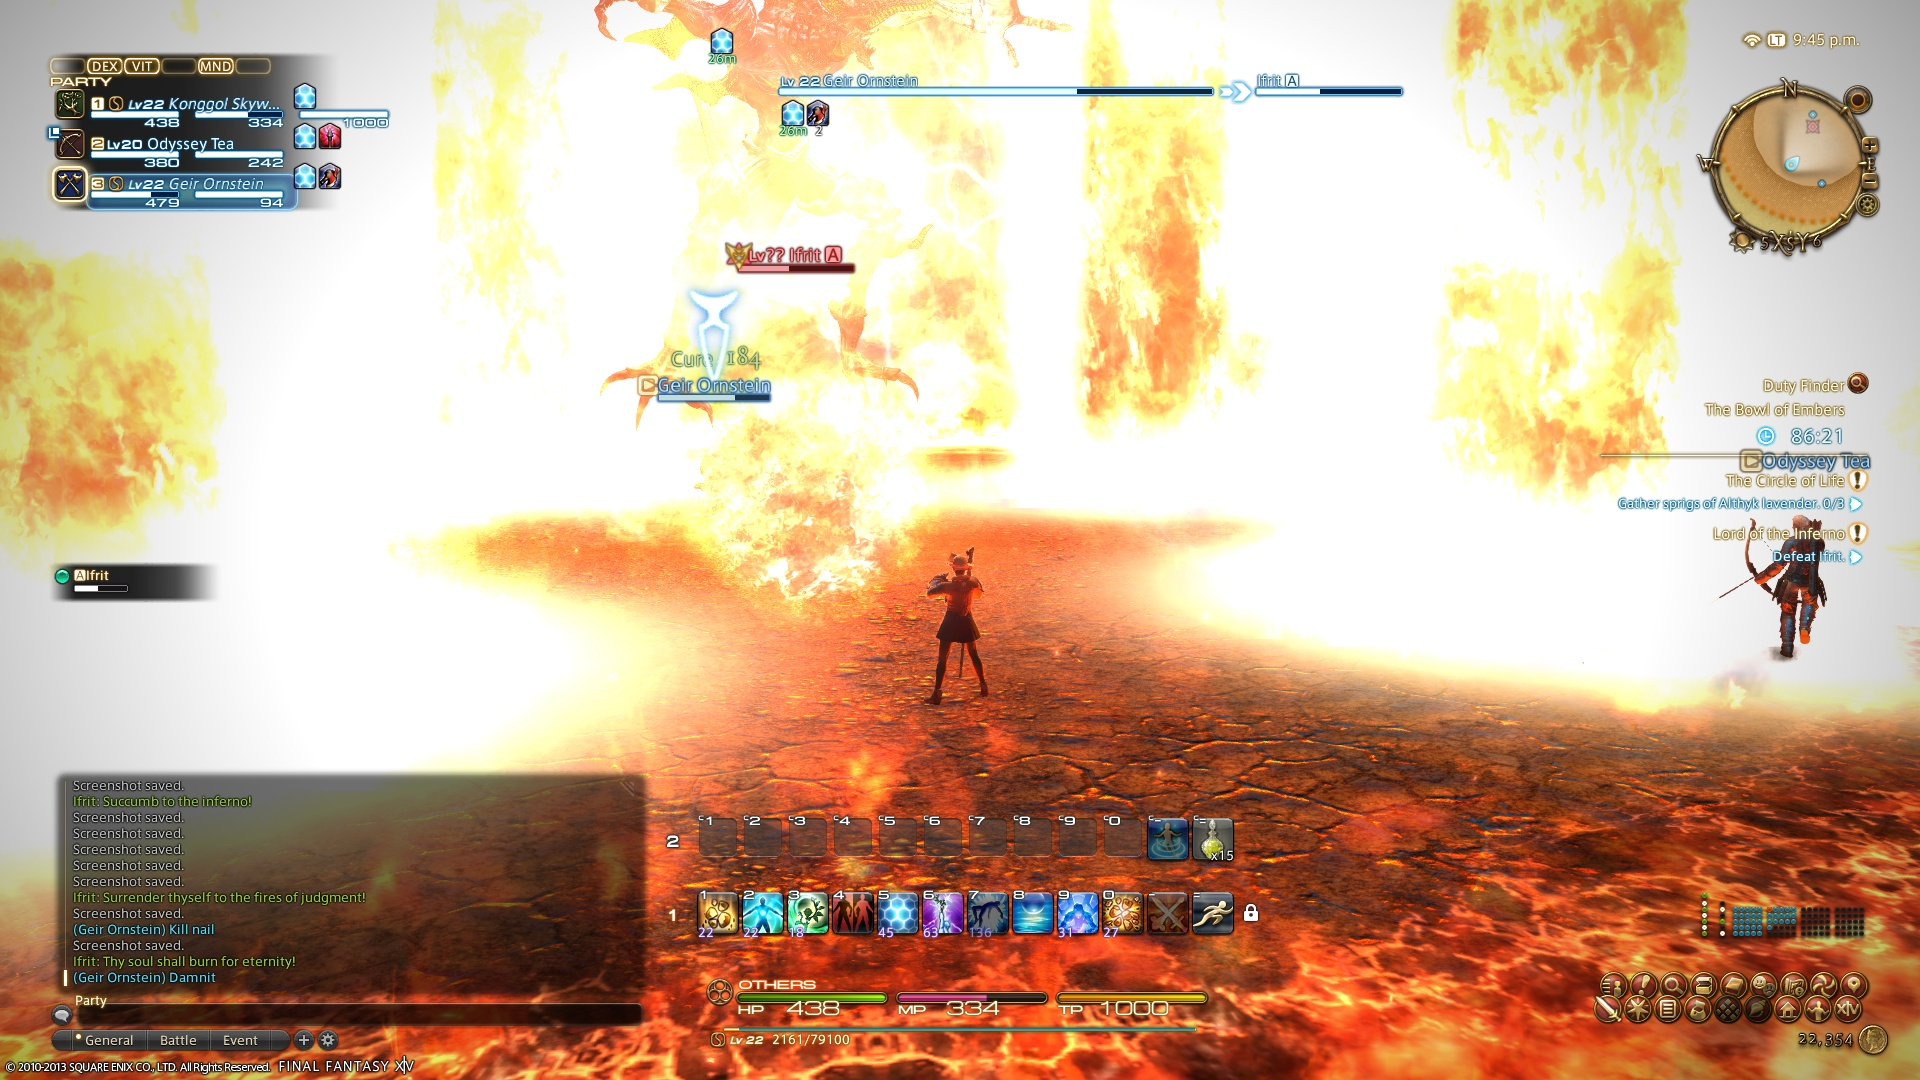 Final Fantasy XIV Primal Guide - Ifrit, the Lord of Inferno